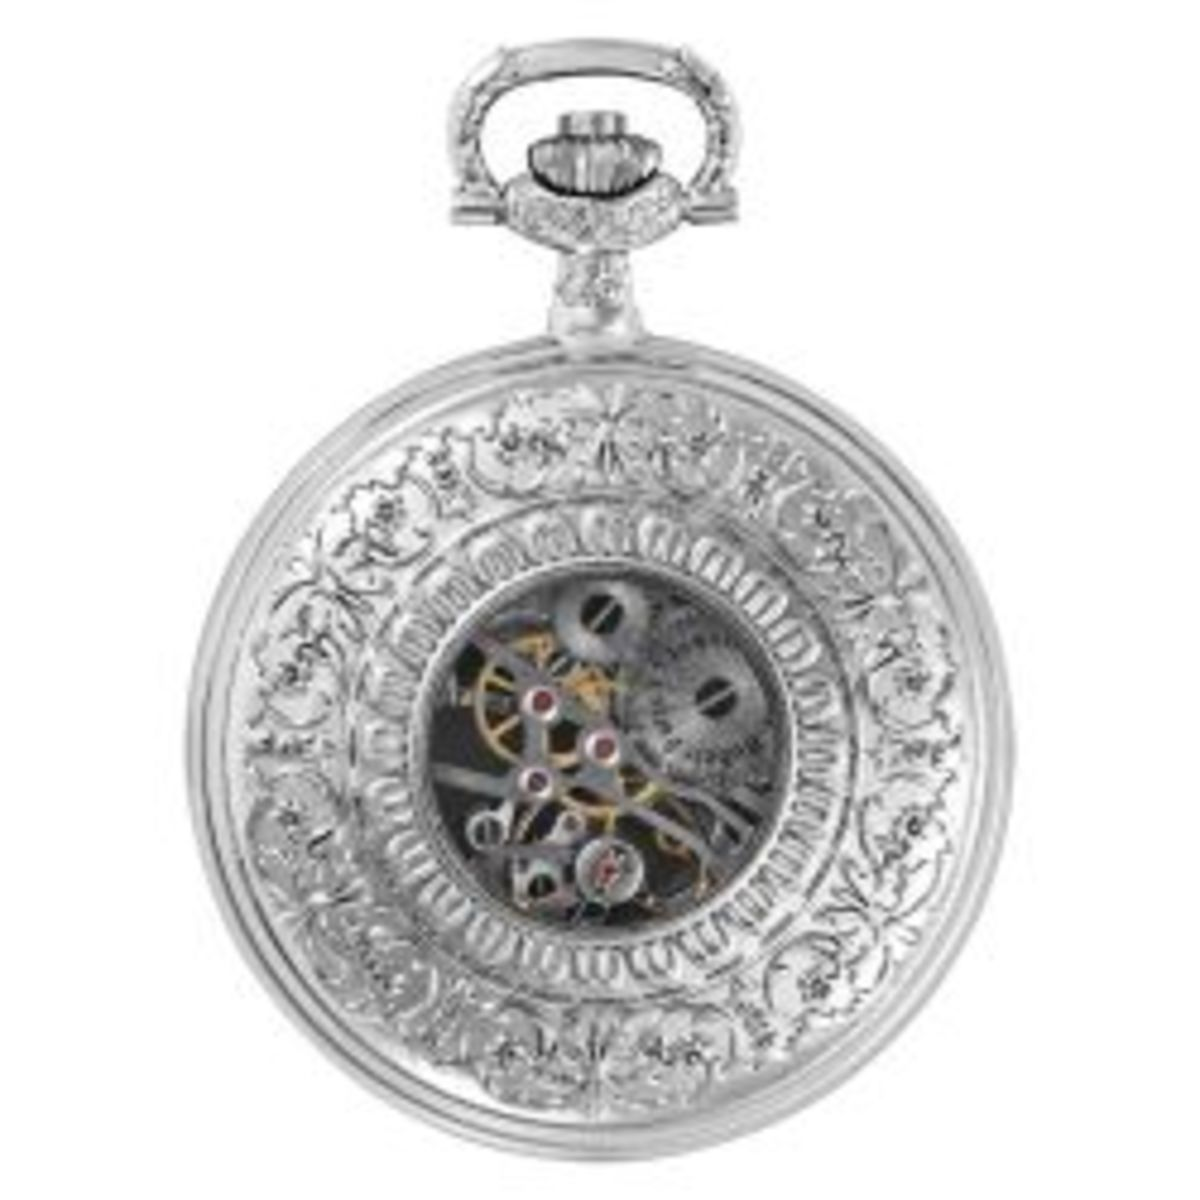 Sterling Silver Pocket Watch